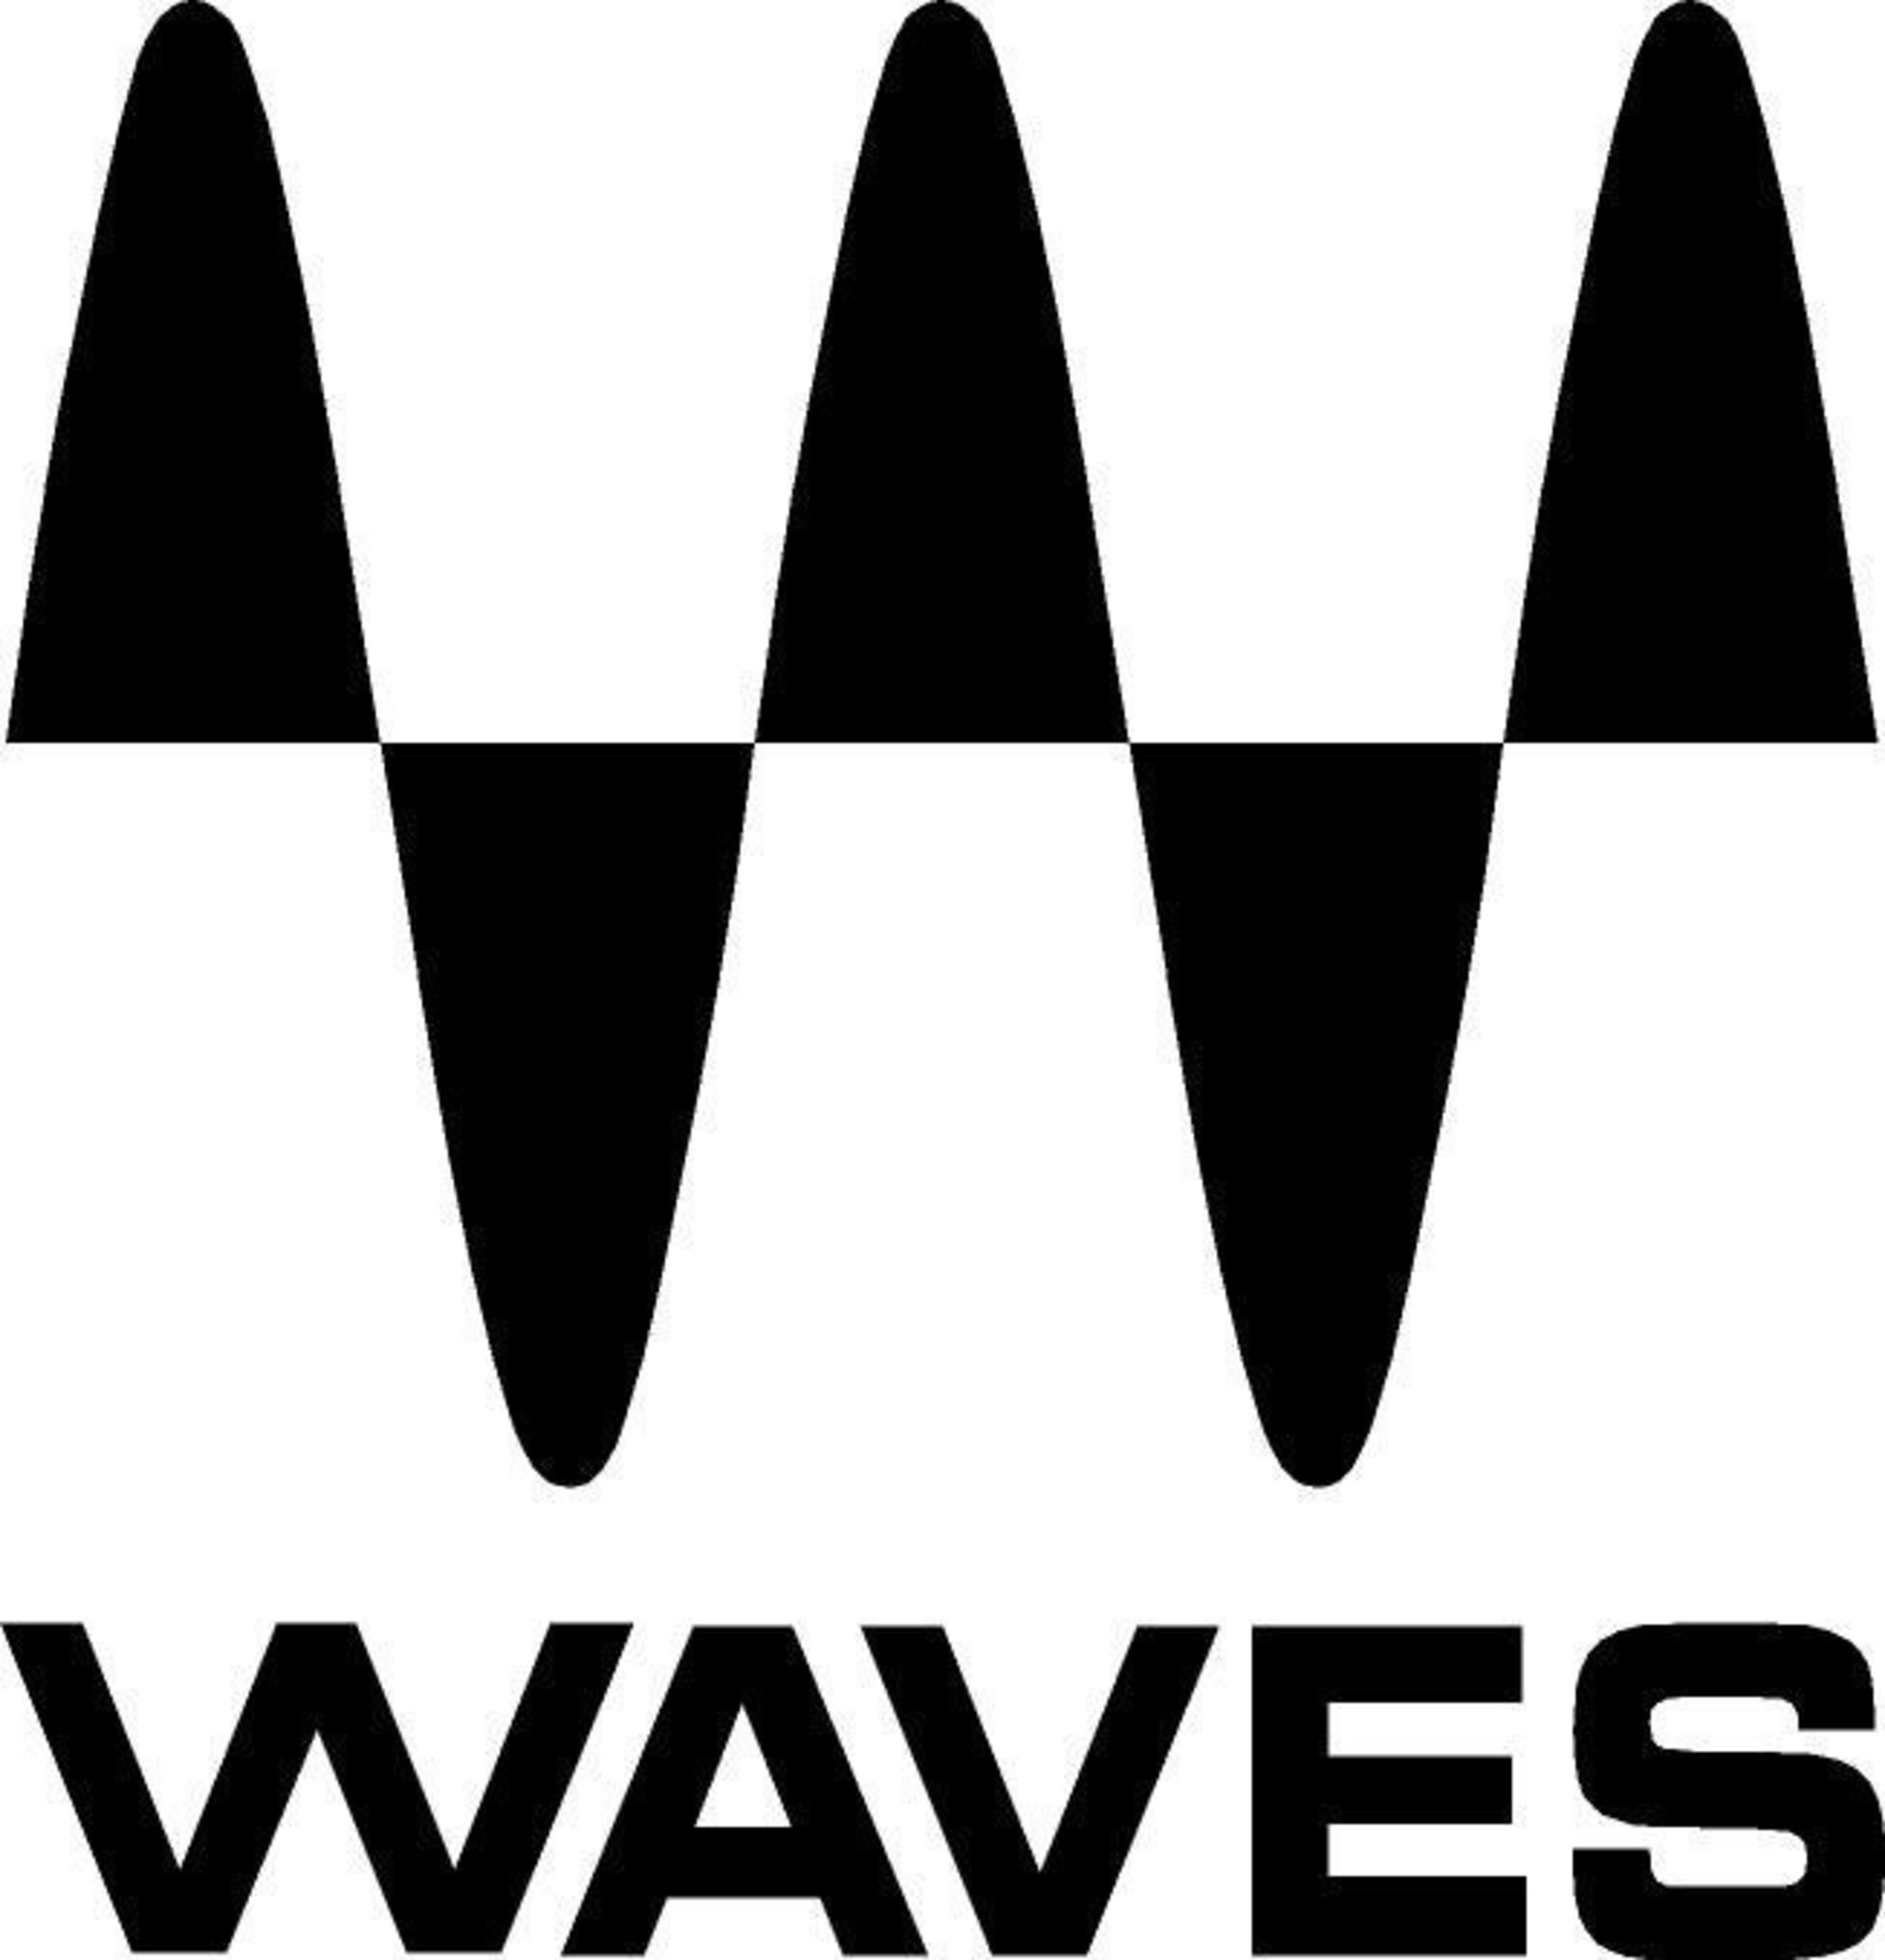 'Why Waves' at International CES 2016? Company Sets the Benchmark for Sound Throughout the Consumer